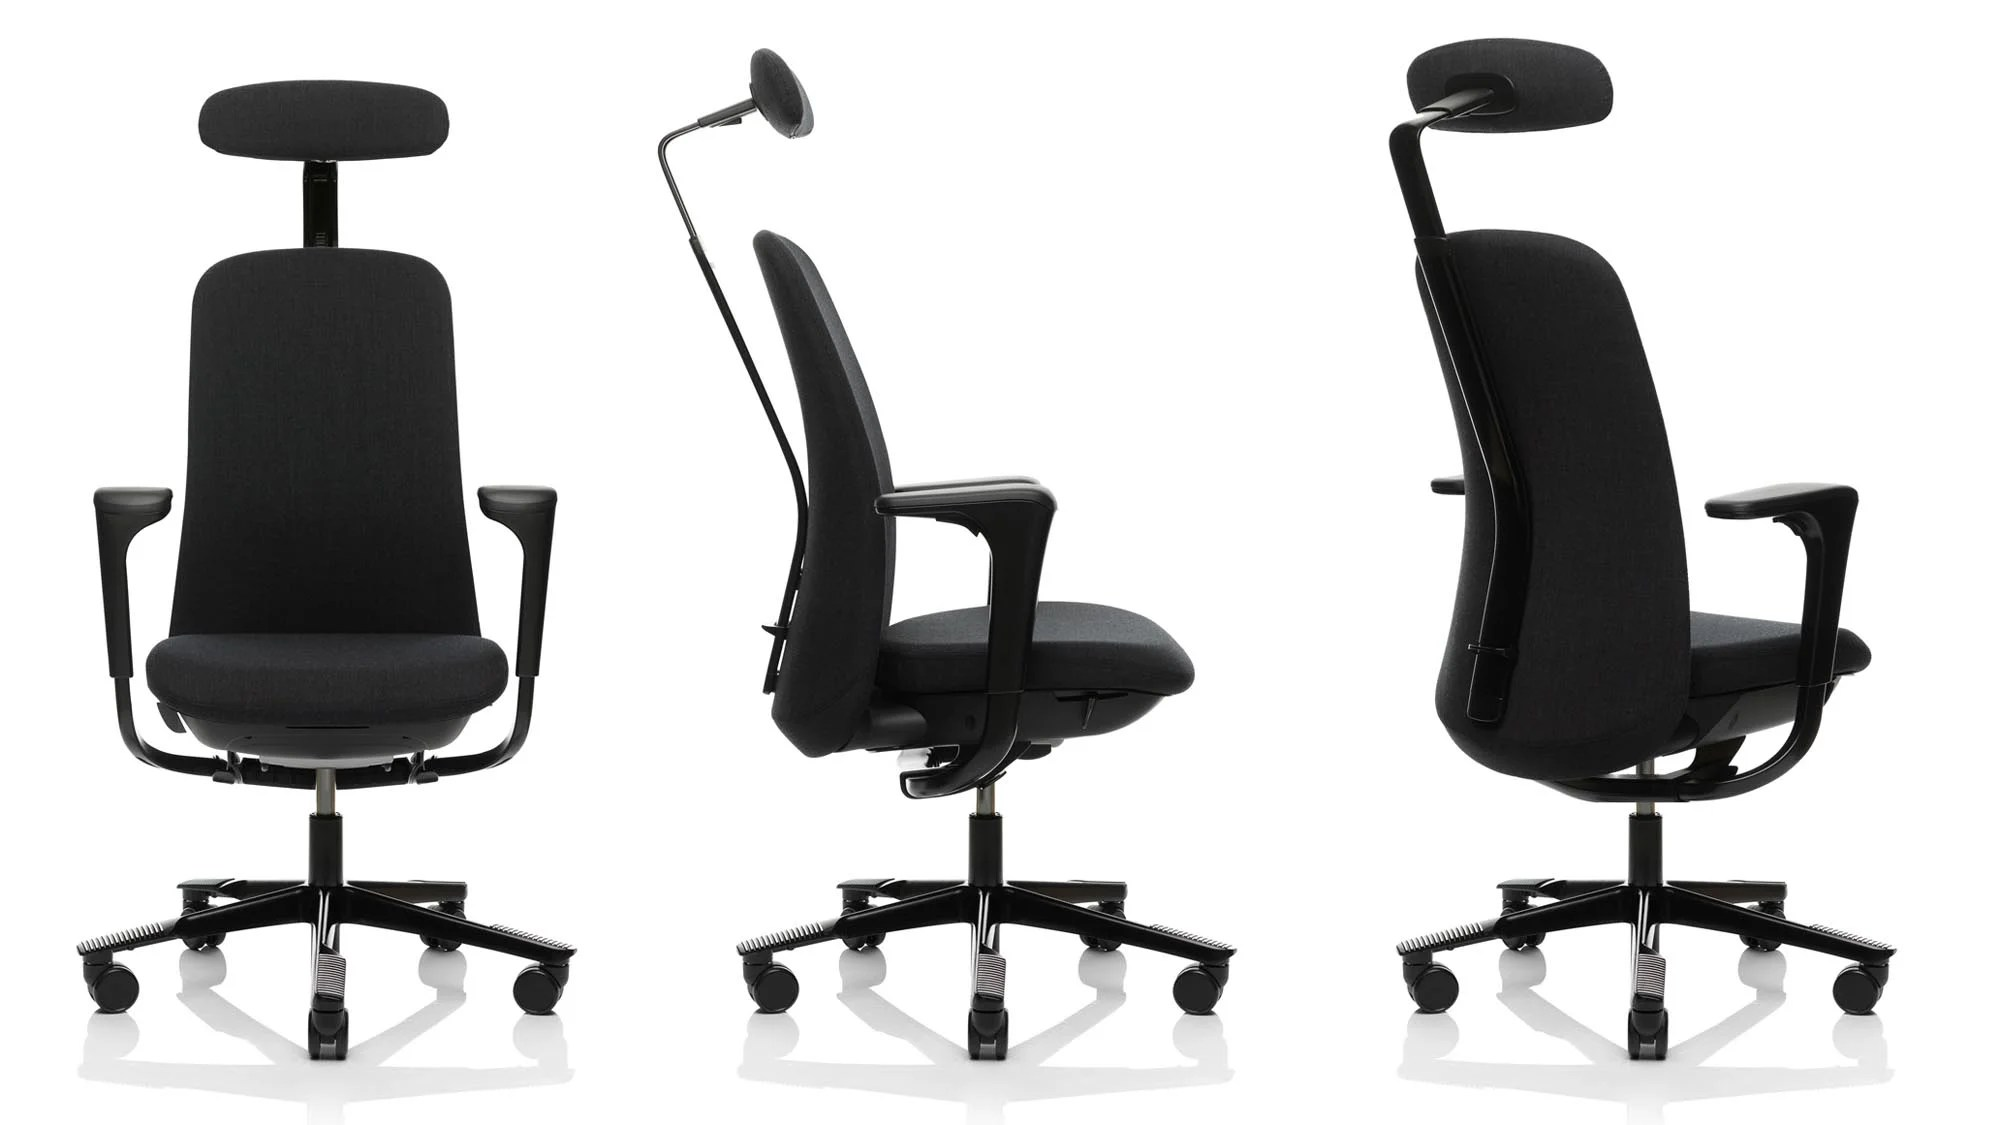 Best Office Chair 2018: Style, Comfort And Adjustability